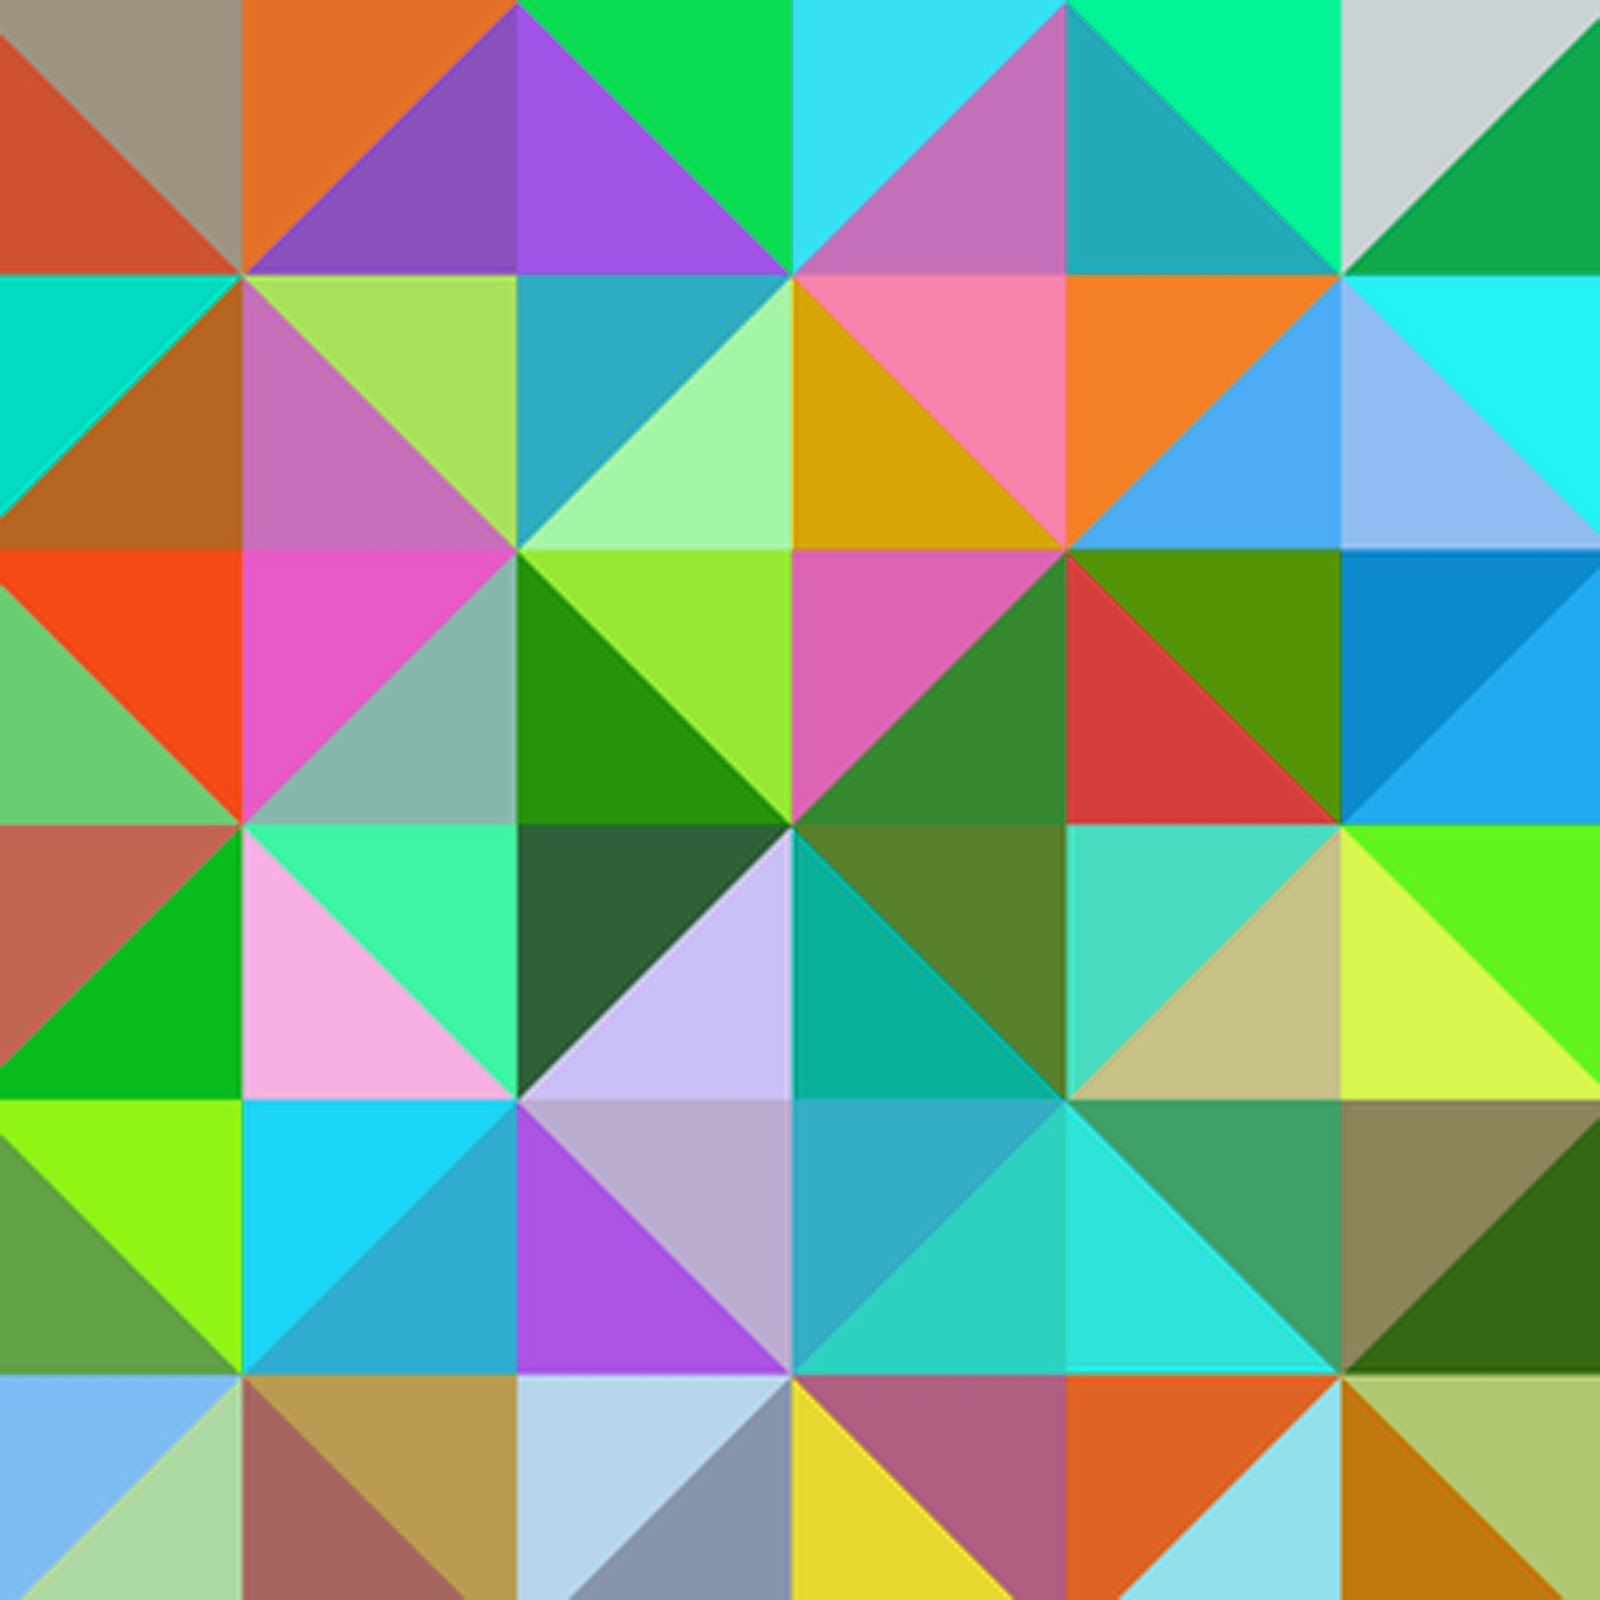 http://www.doodlecraftblog.com/2014/04/colorful-triangles-geometric-freebies.html